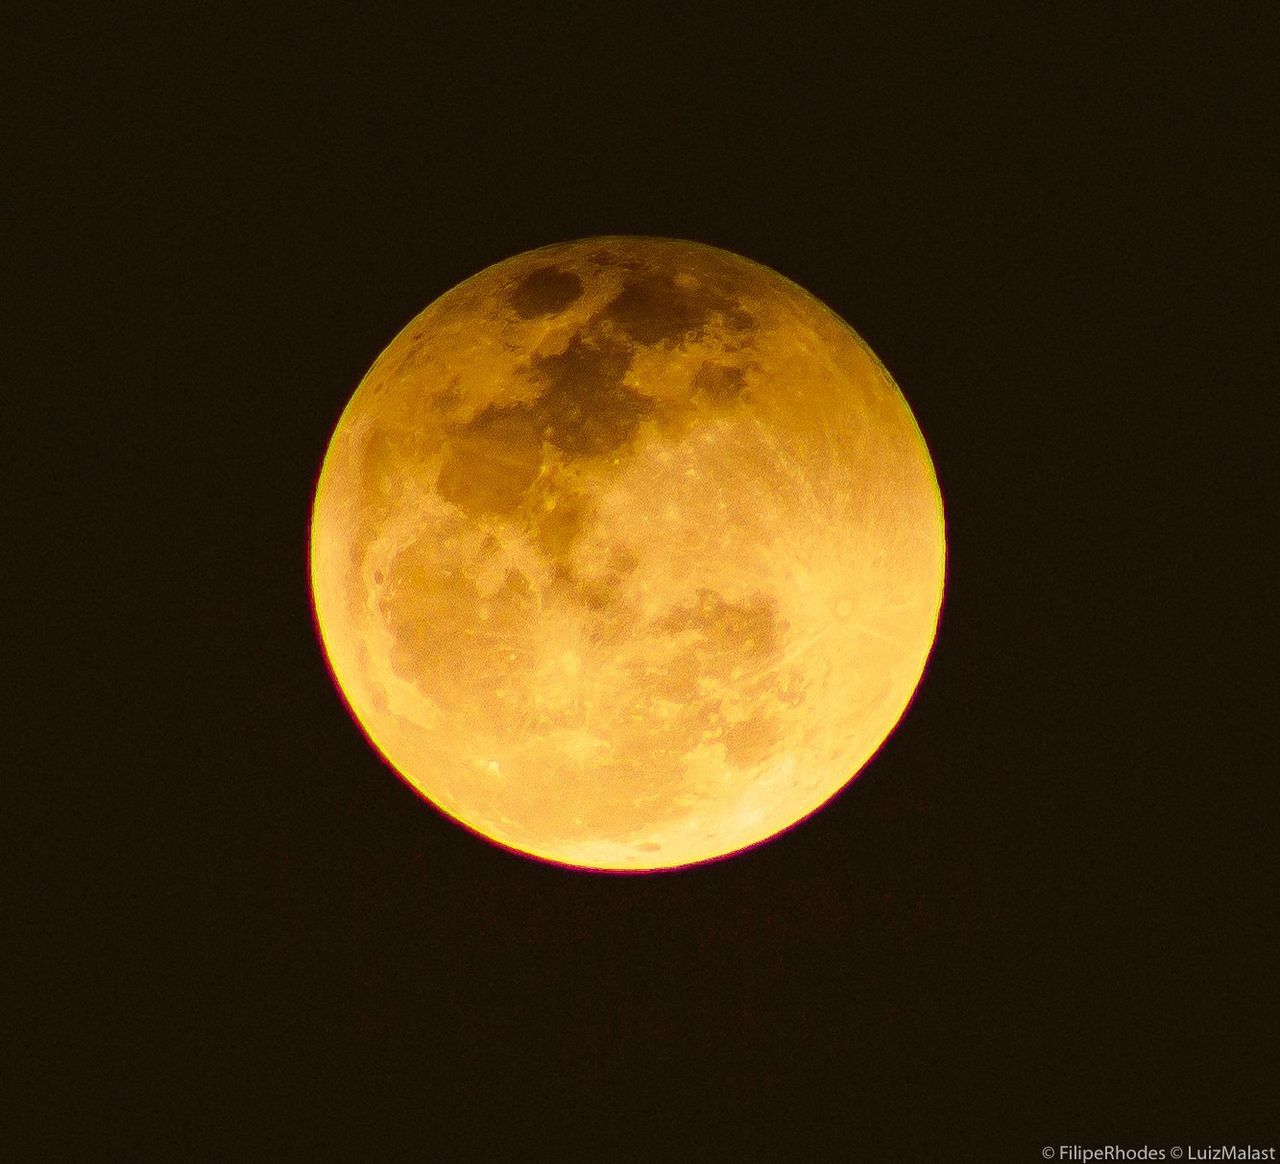 moon, night, astronomy, moon surface, planetary moon, beauty in nature, nature, full moon, low angle view, scenics, majestic, tranquility, no people, outdoors, tranquil scene, sky, space exploration, clear sky, space, half moon, close-up